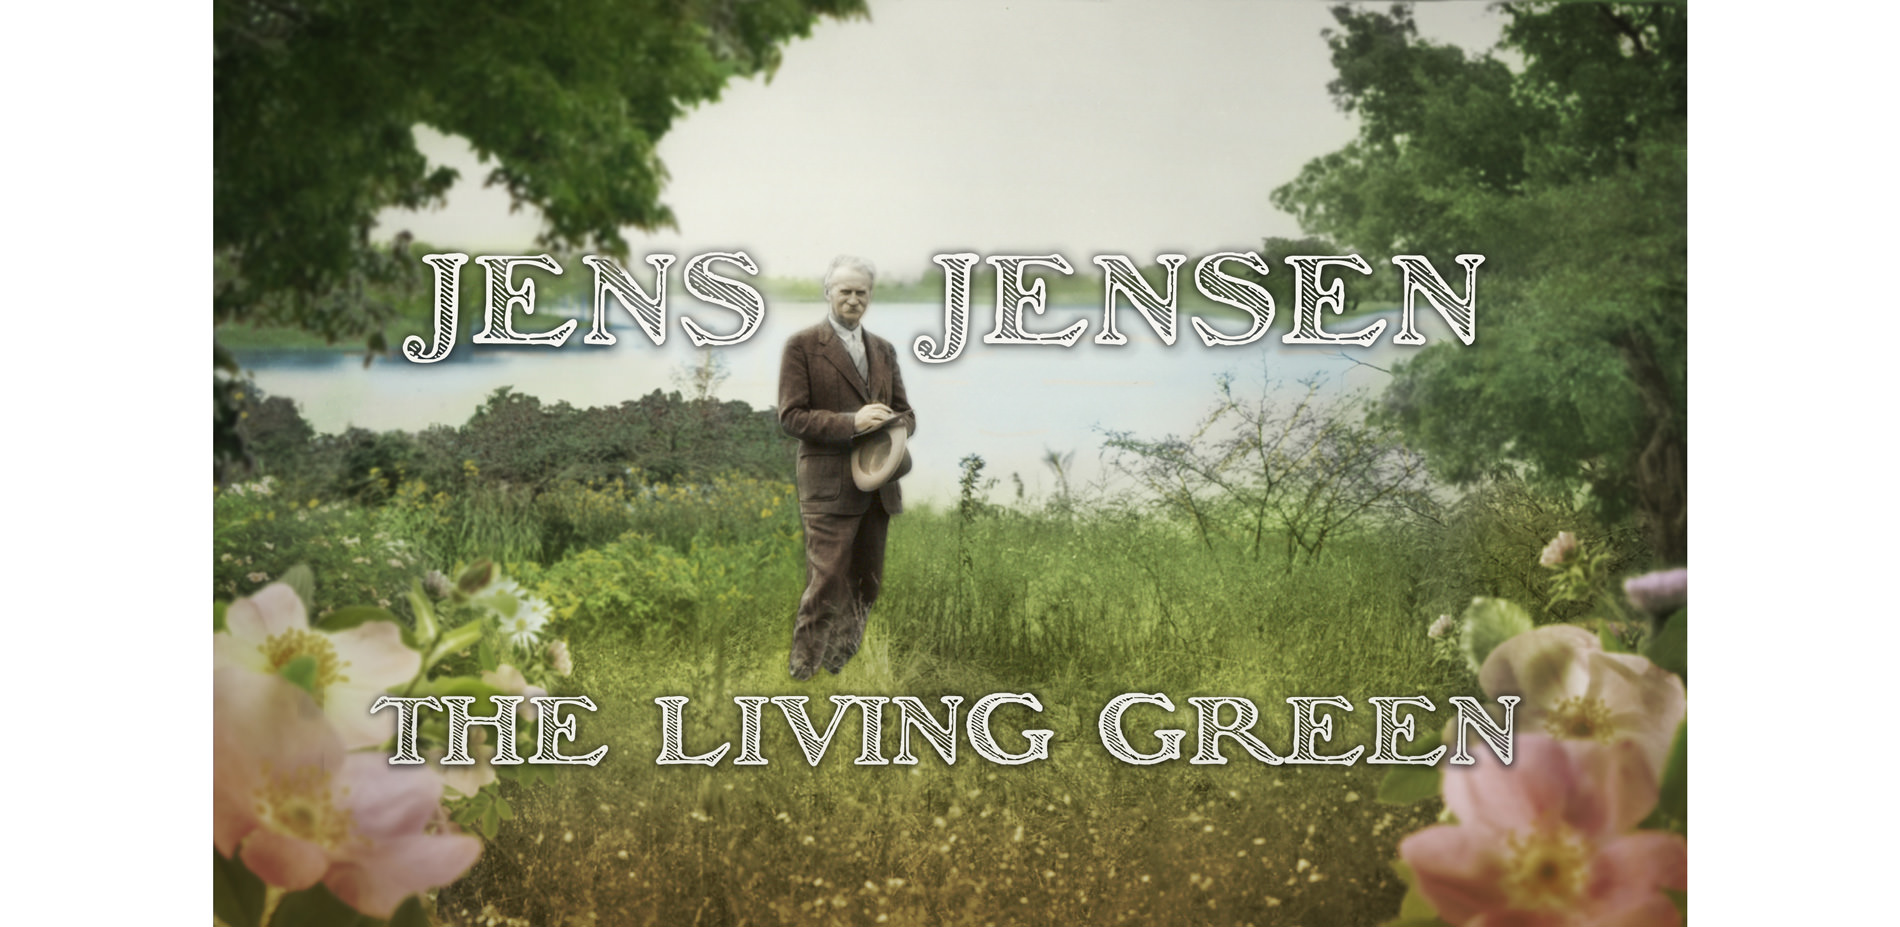 Title sequence Jens Jensen film